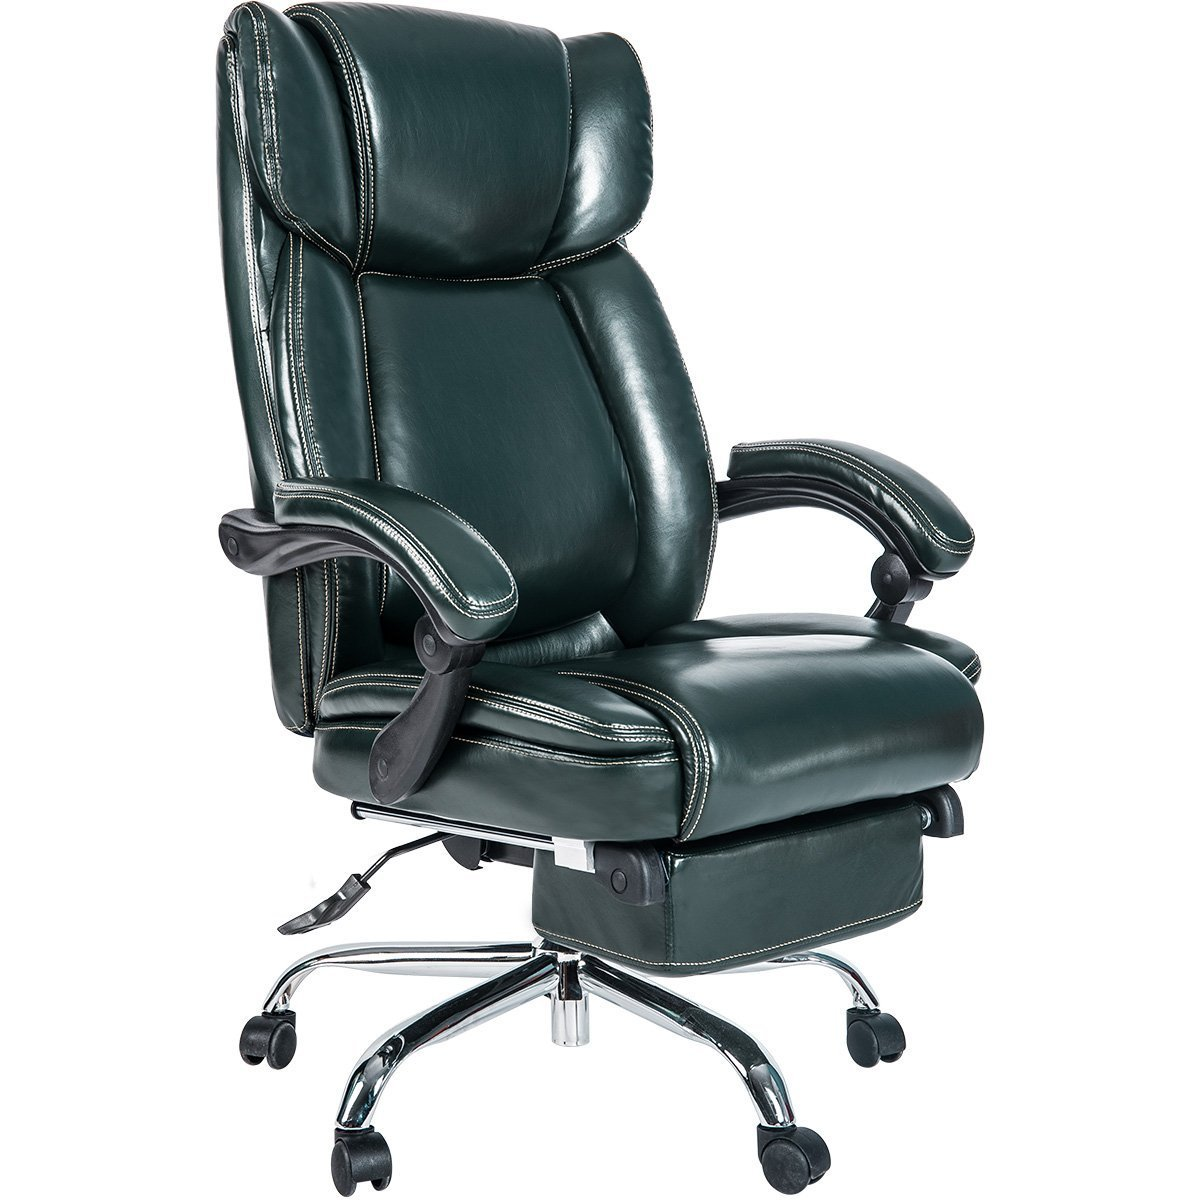 Merax Inno Executive High Back Adjustable Office Chair